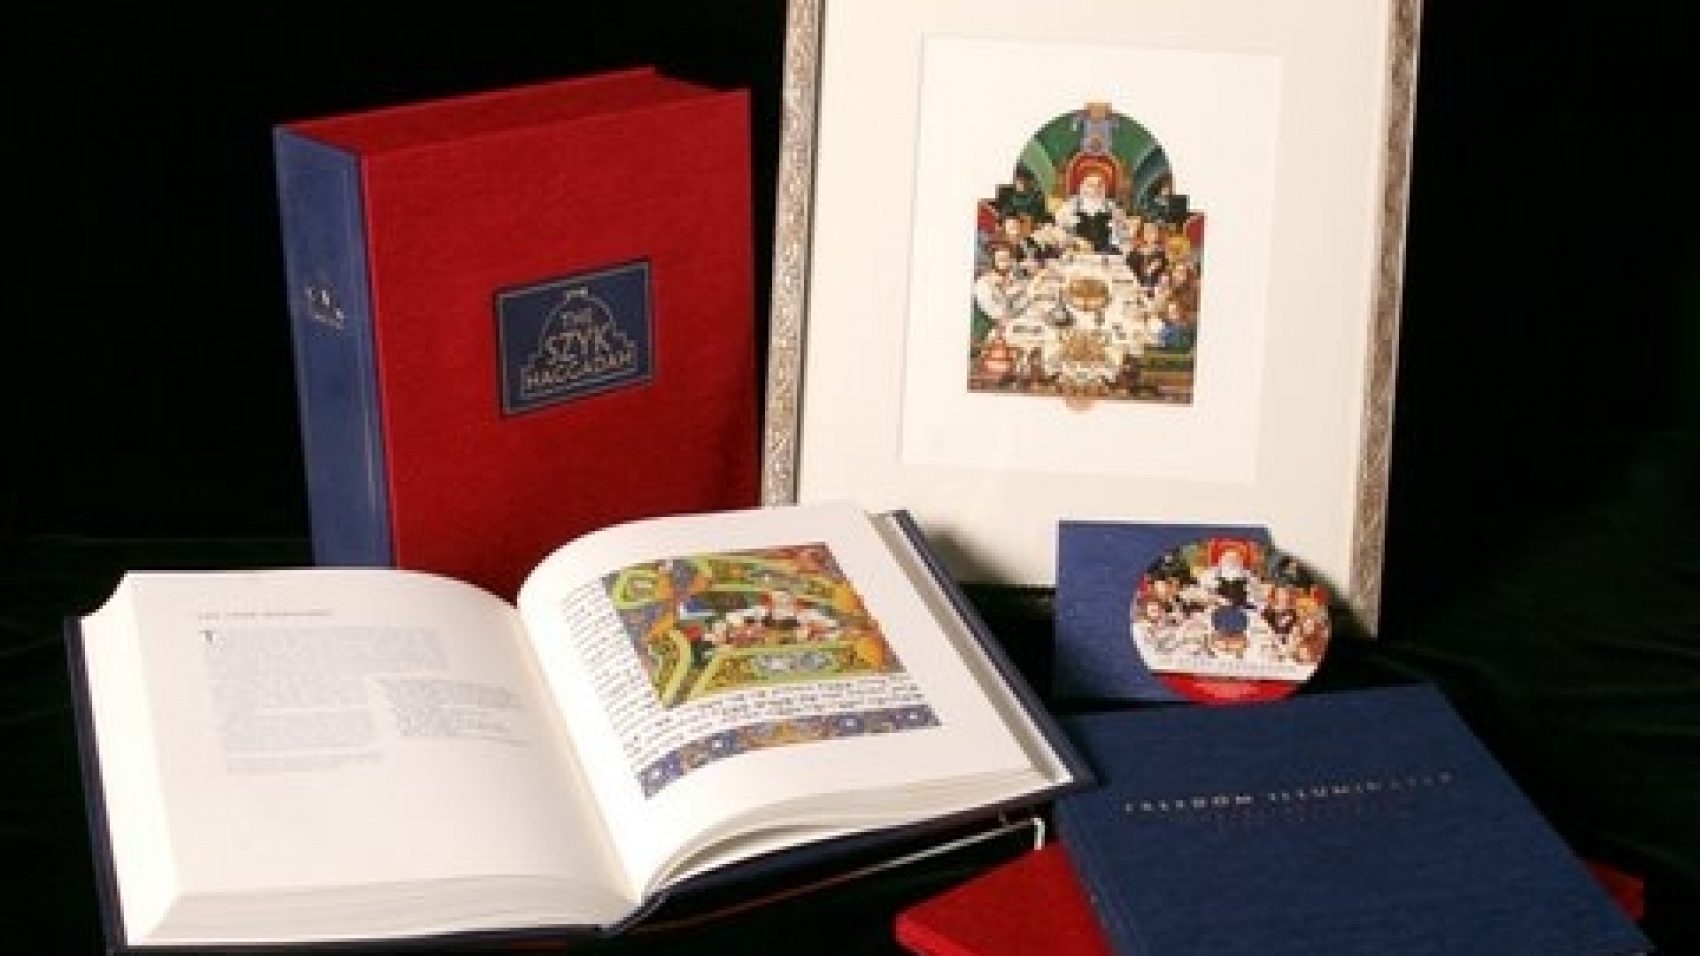 New Edition of The Szyk Haggadah courtesy Historica